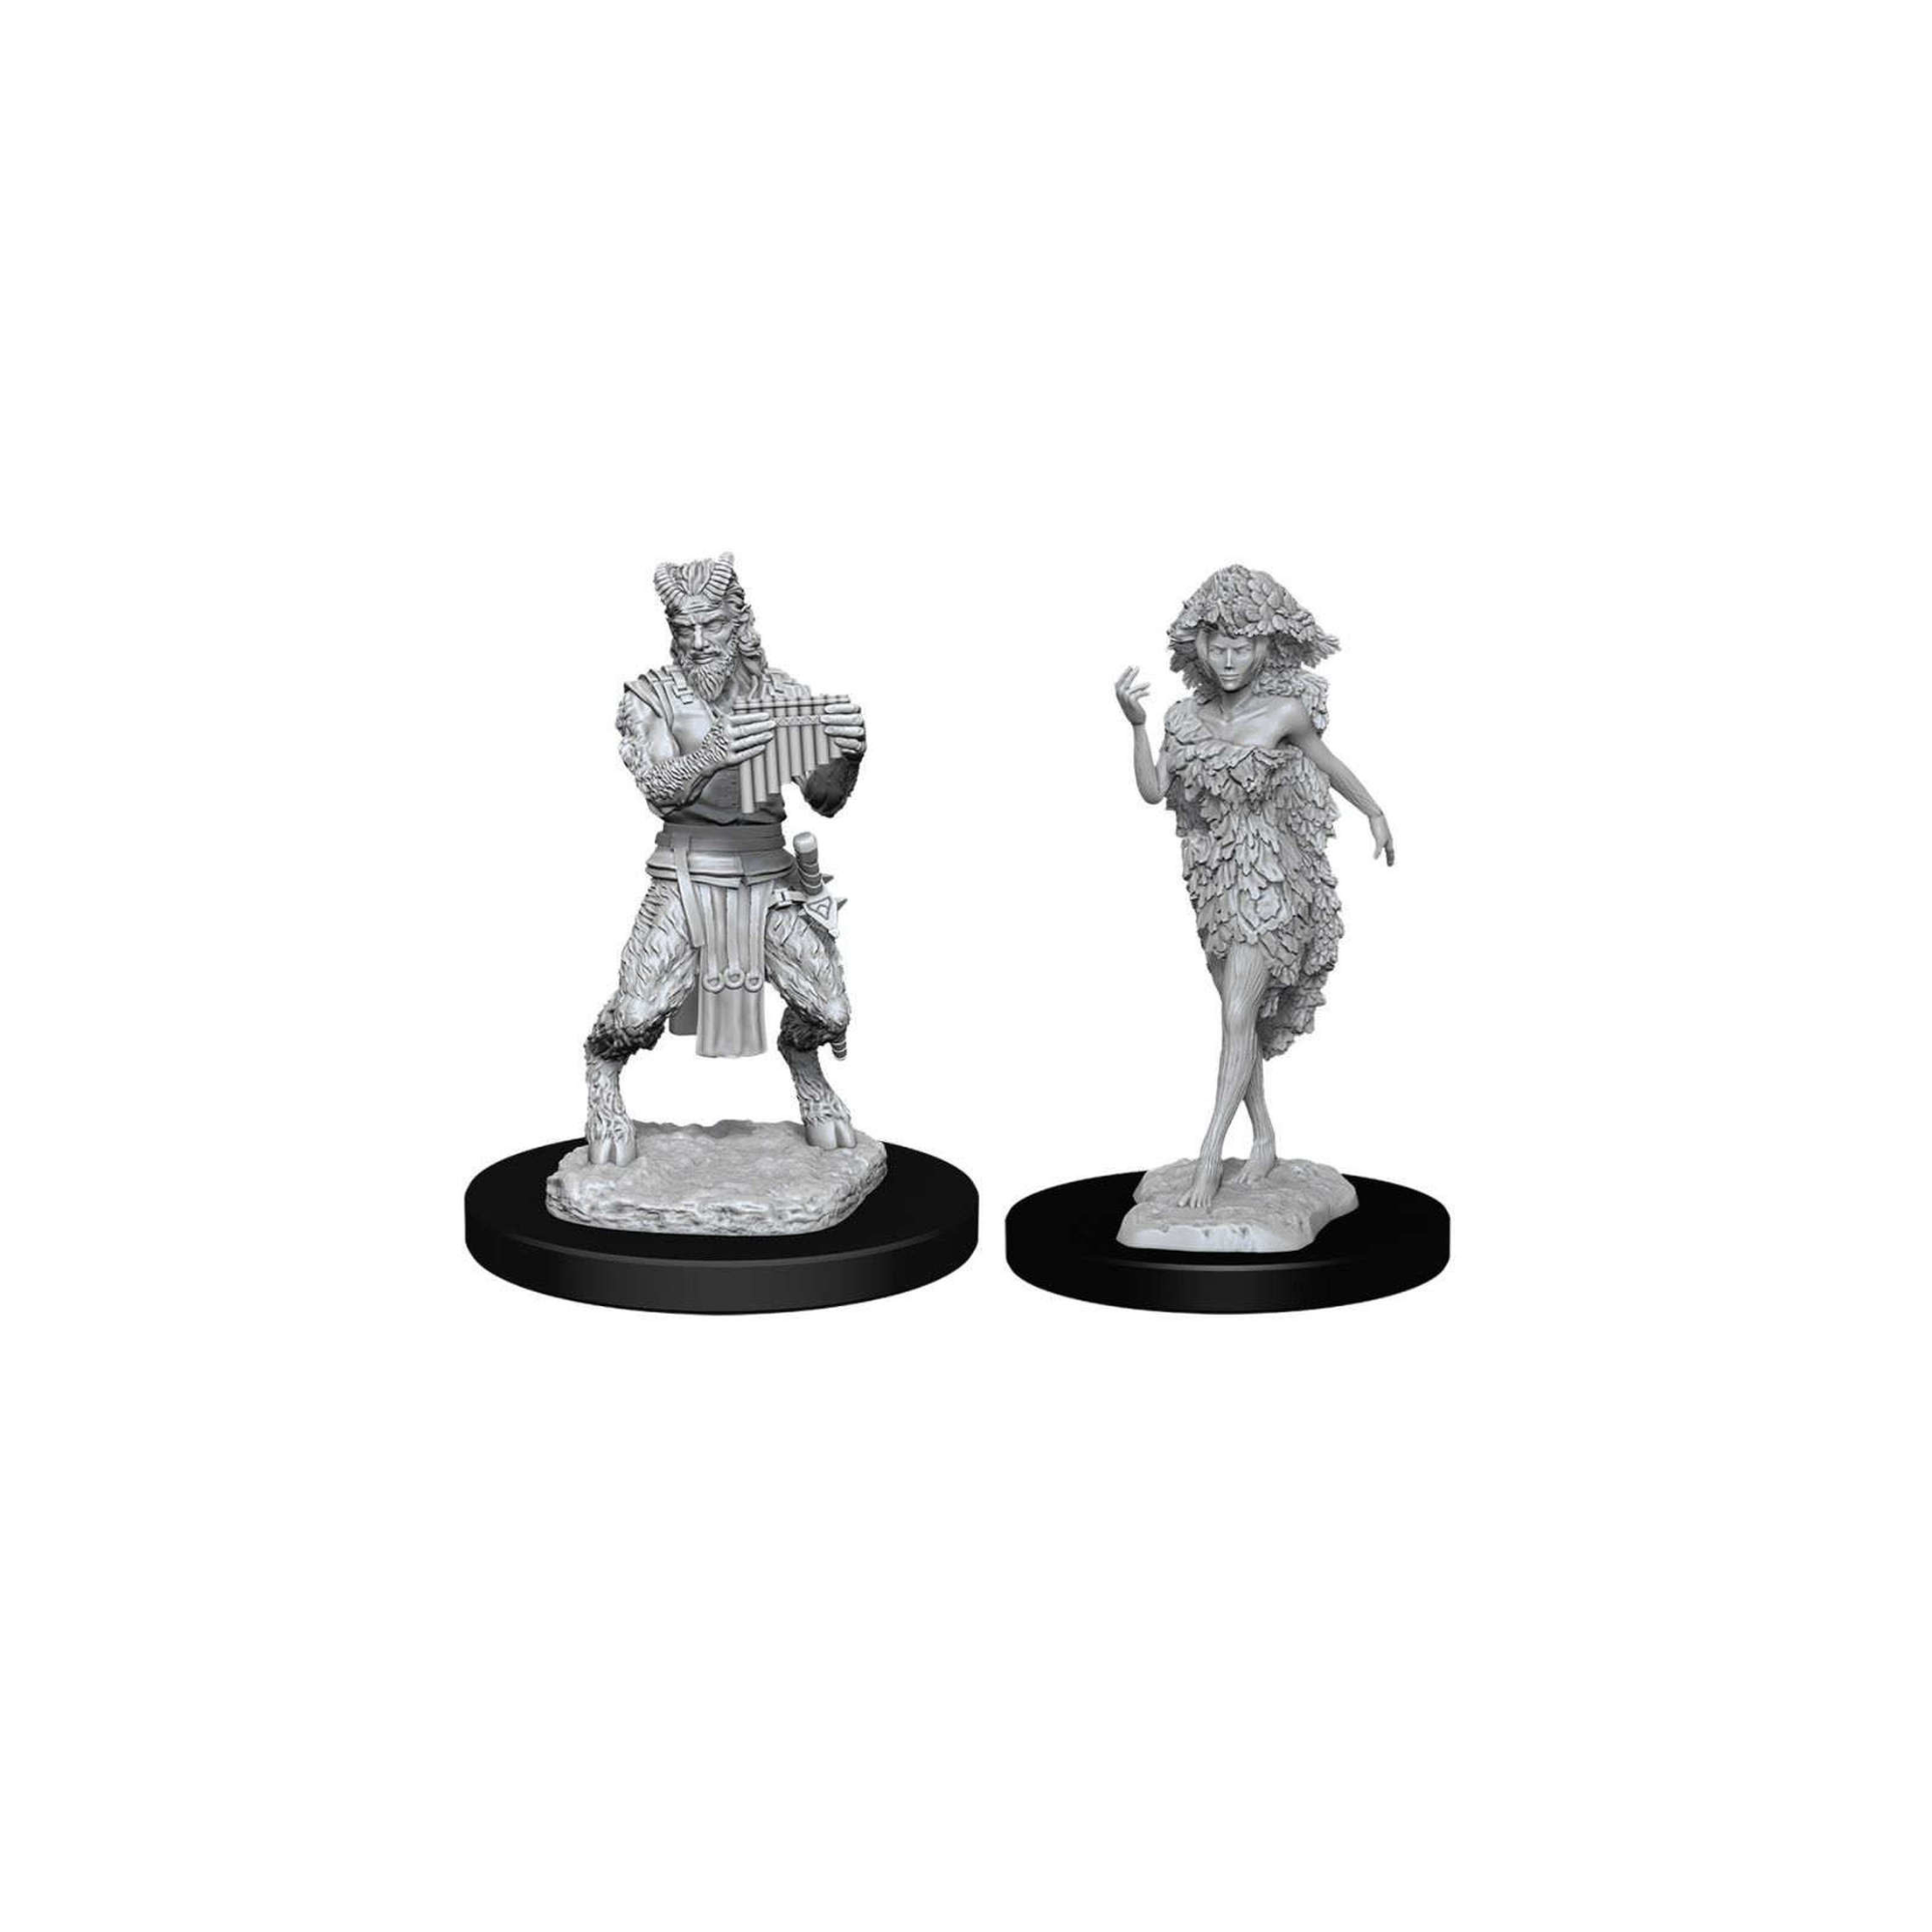 Wizkids Games D&D Dungeons & Dragons: DnD Unpainted Minis WV11 Satyr and Dryad